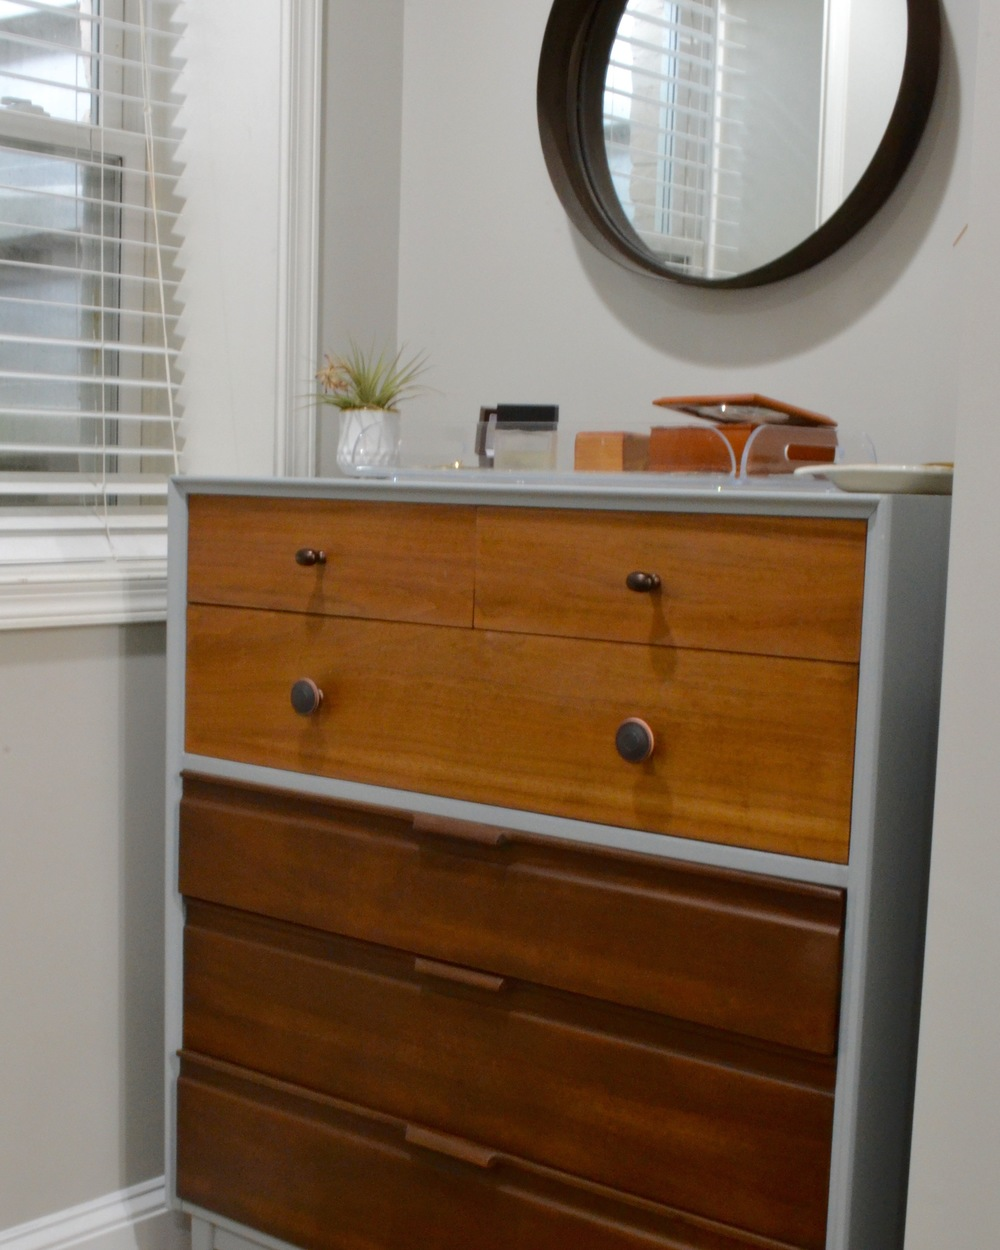 I will be eternally grateful to the woman I found on Craigslist who was selling this dresser. Cate & Chelsea are right... DC Craigslist is a treasure trove.